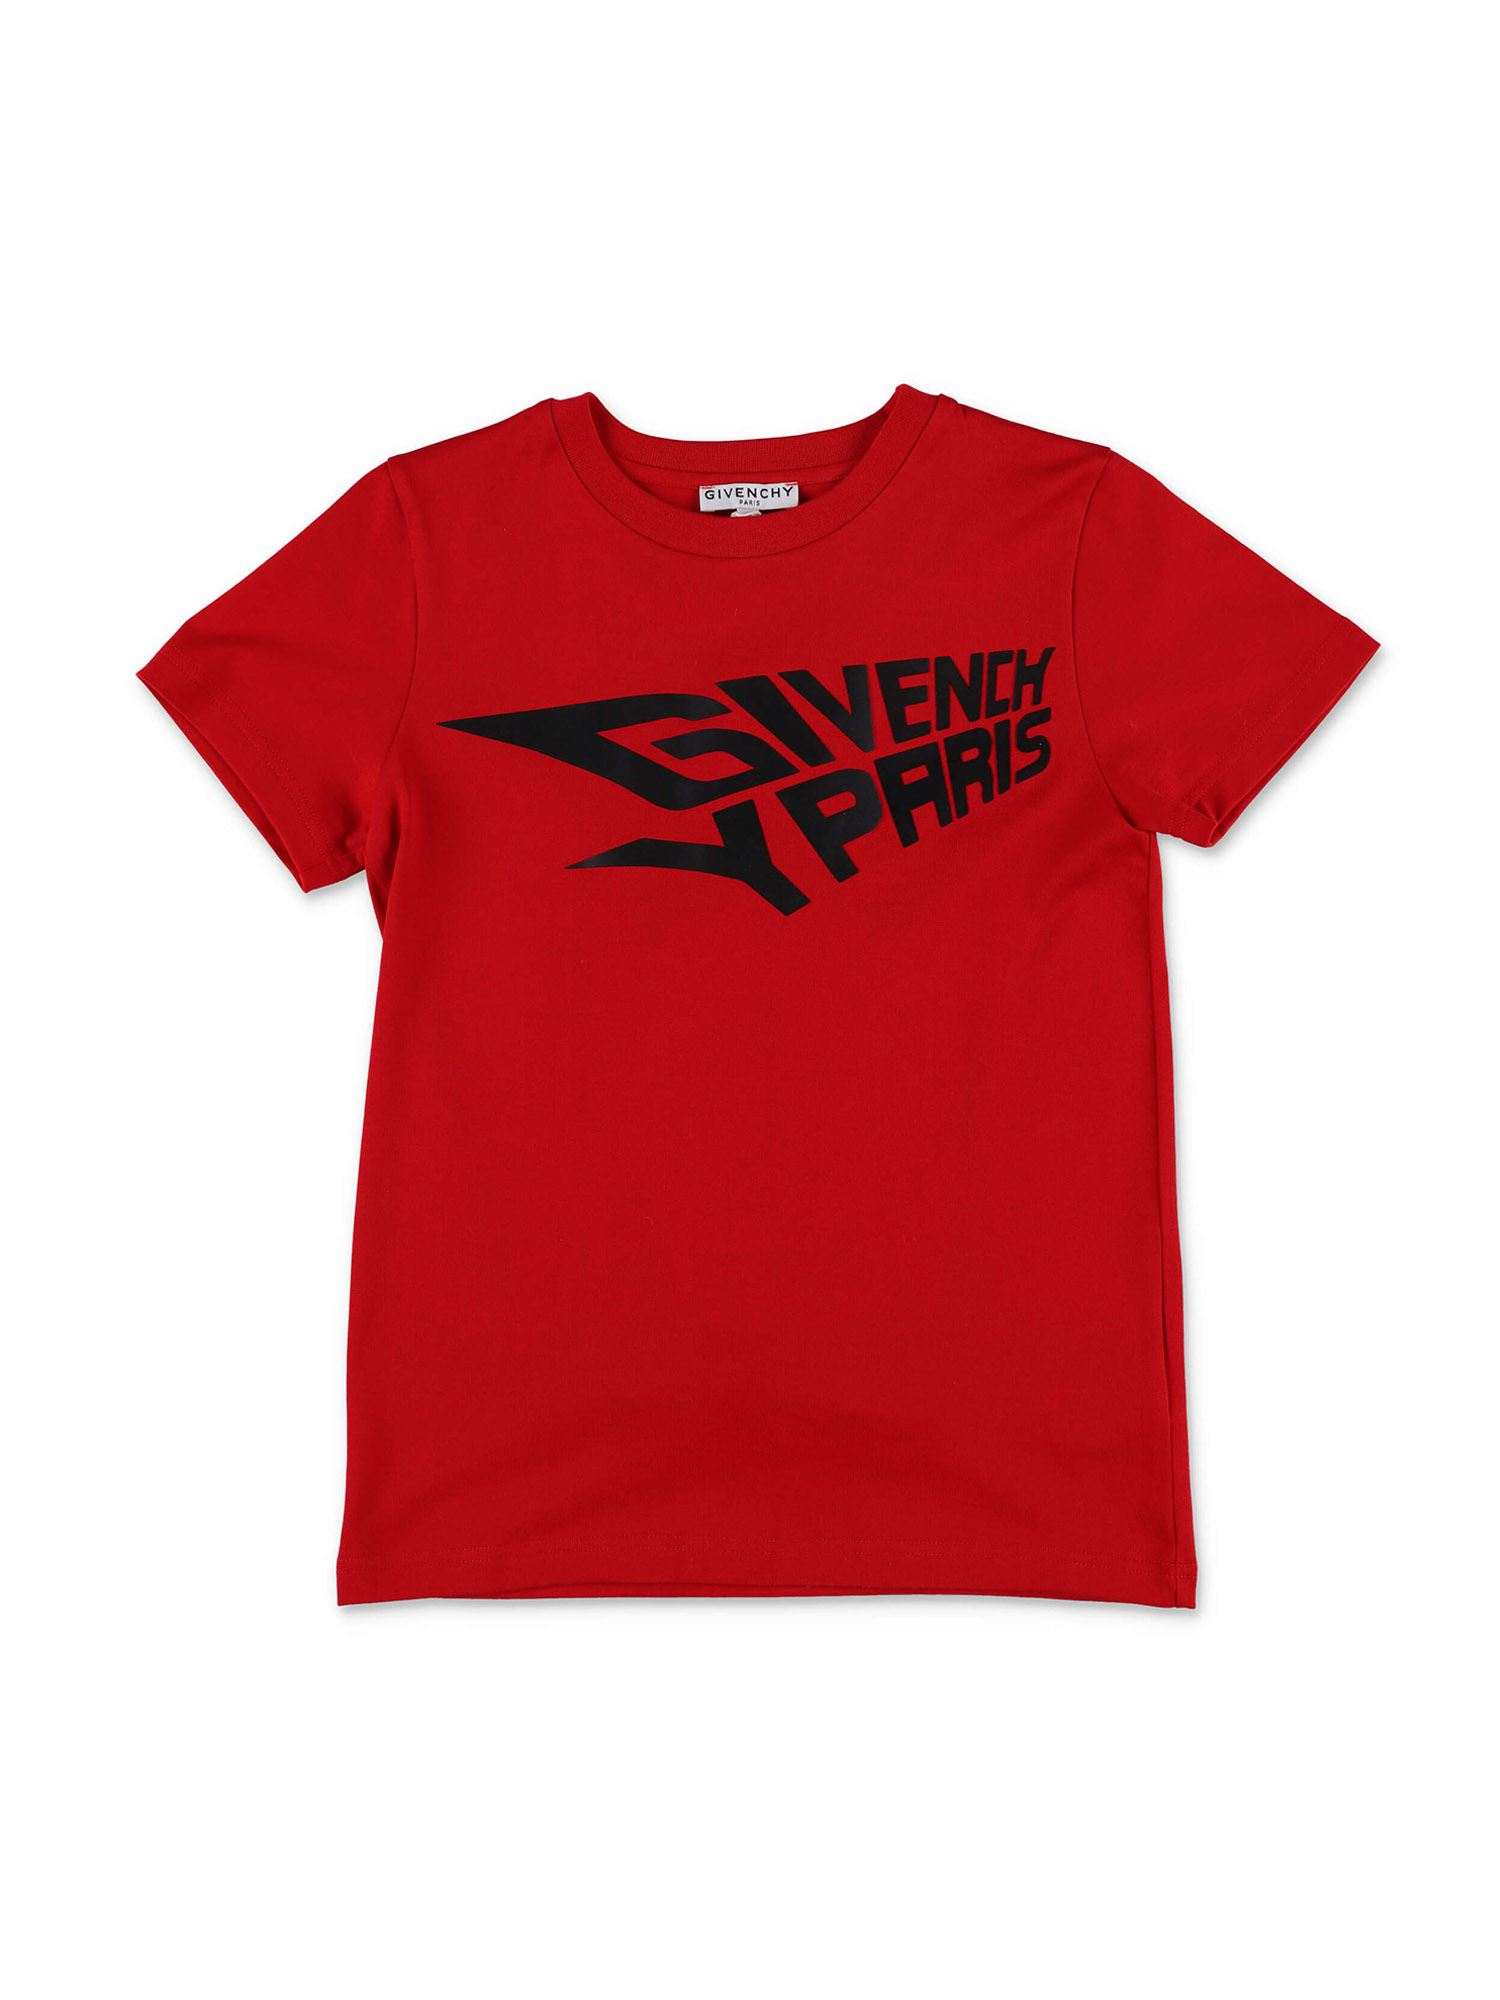 Givenchy RED T-SHIRT WITH LOGO PRINT